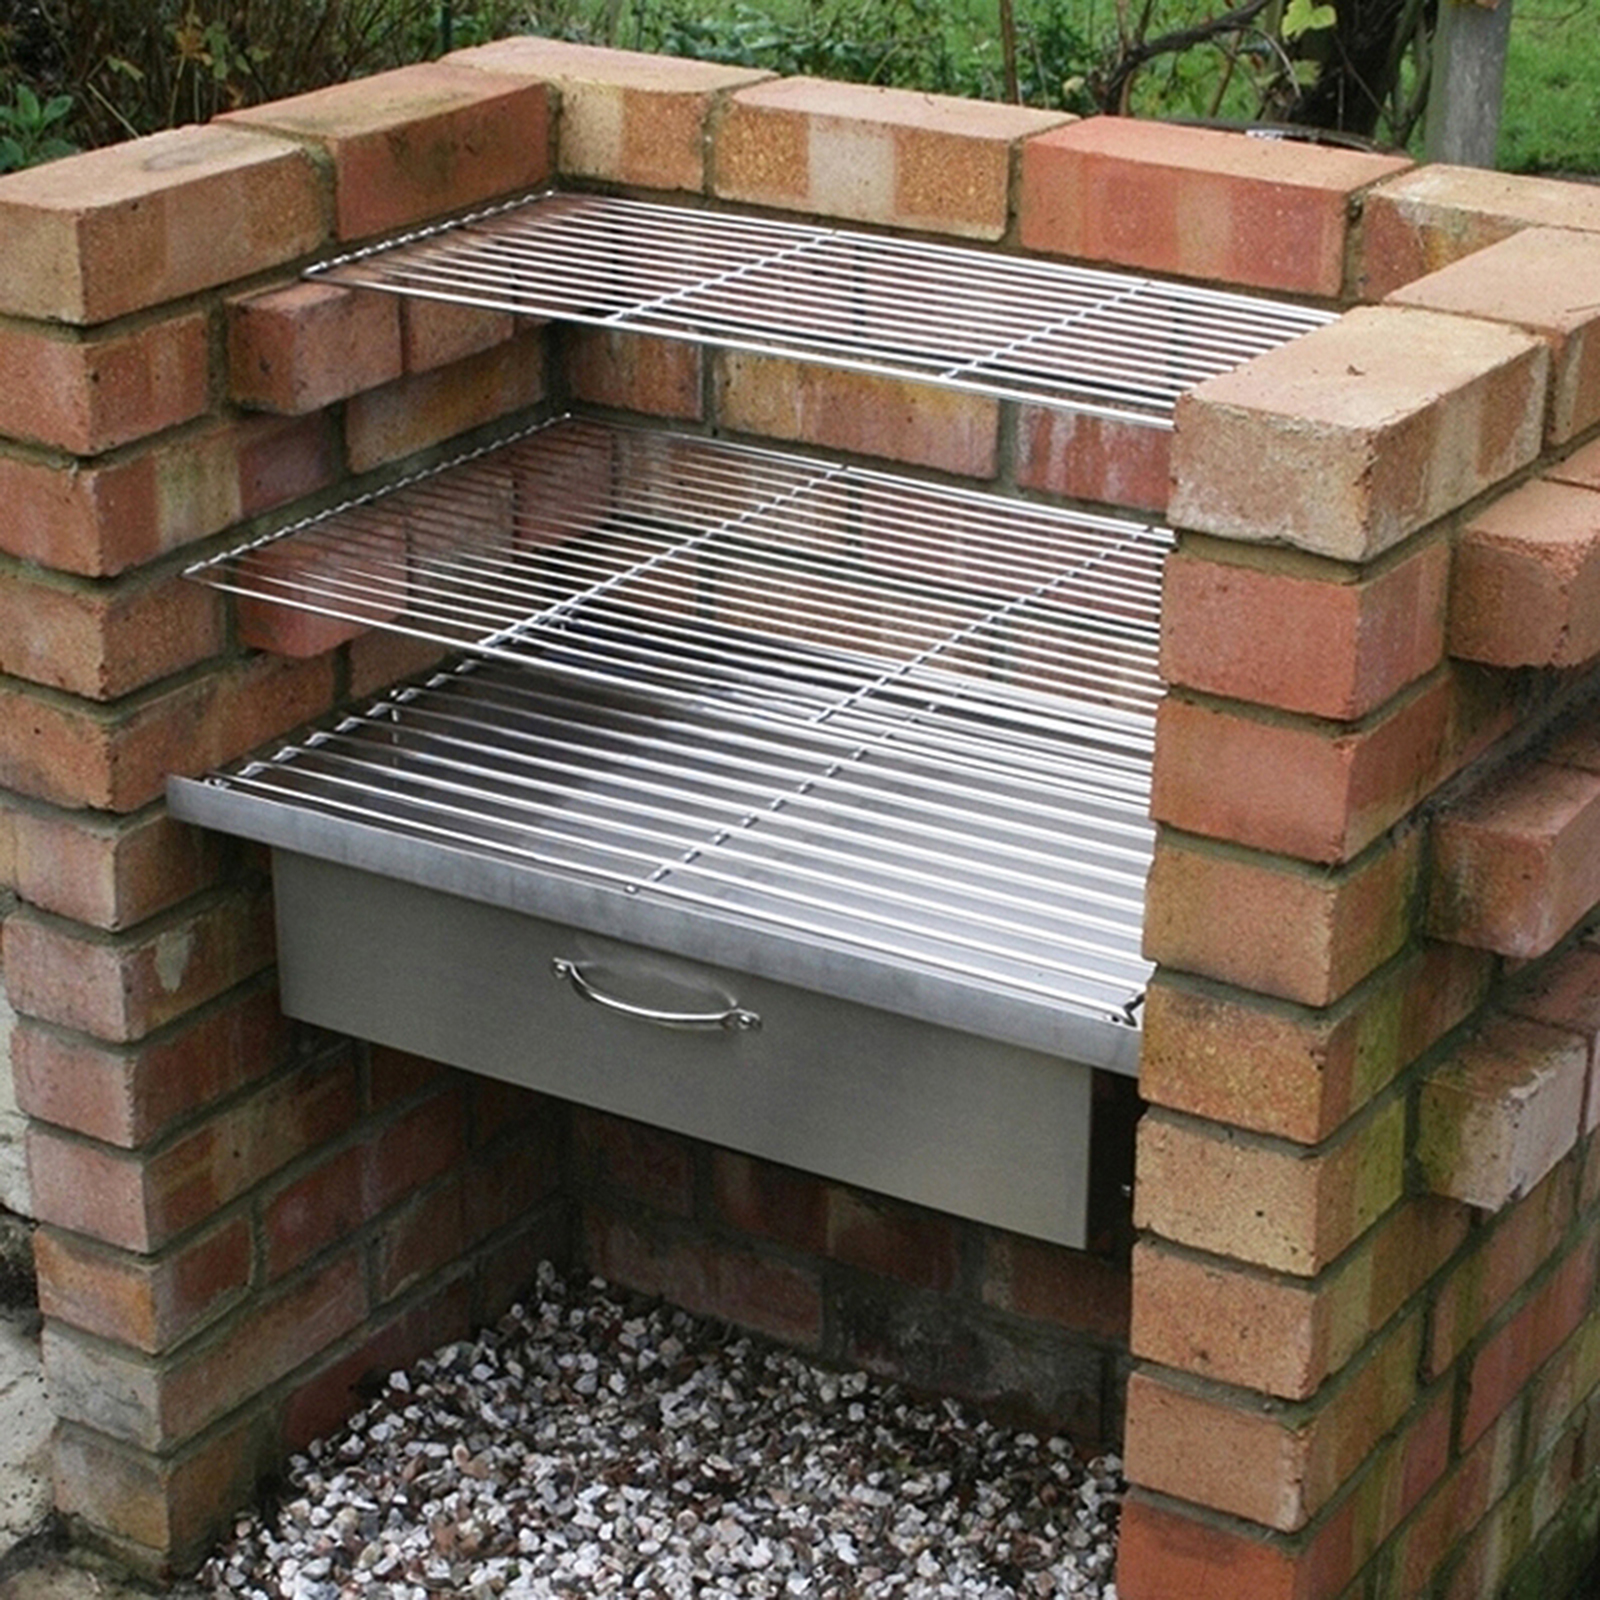 Brick Grills And Outdoor Countertops Building Your: Complete Set, Grills, Warming Draw